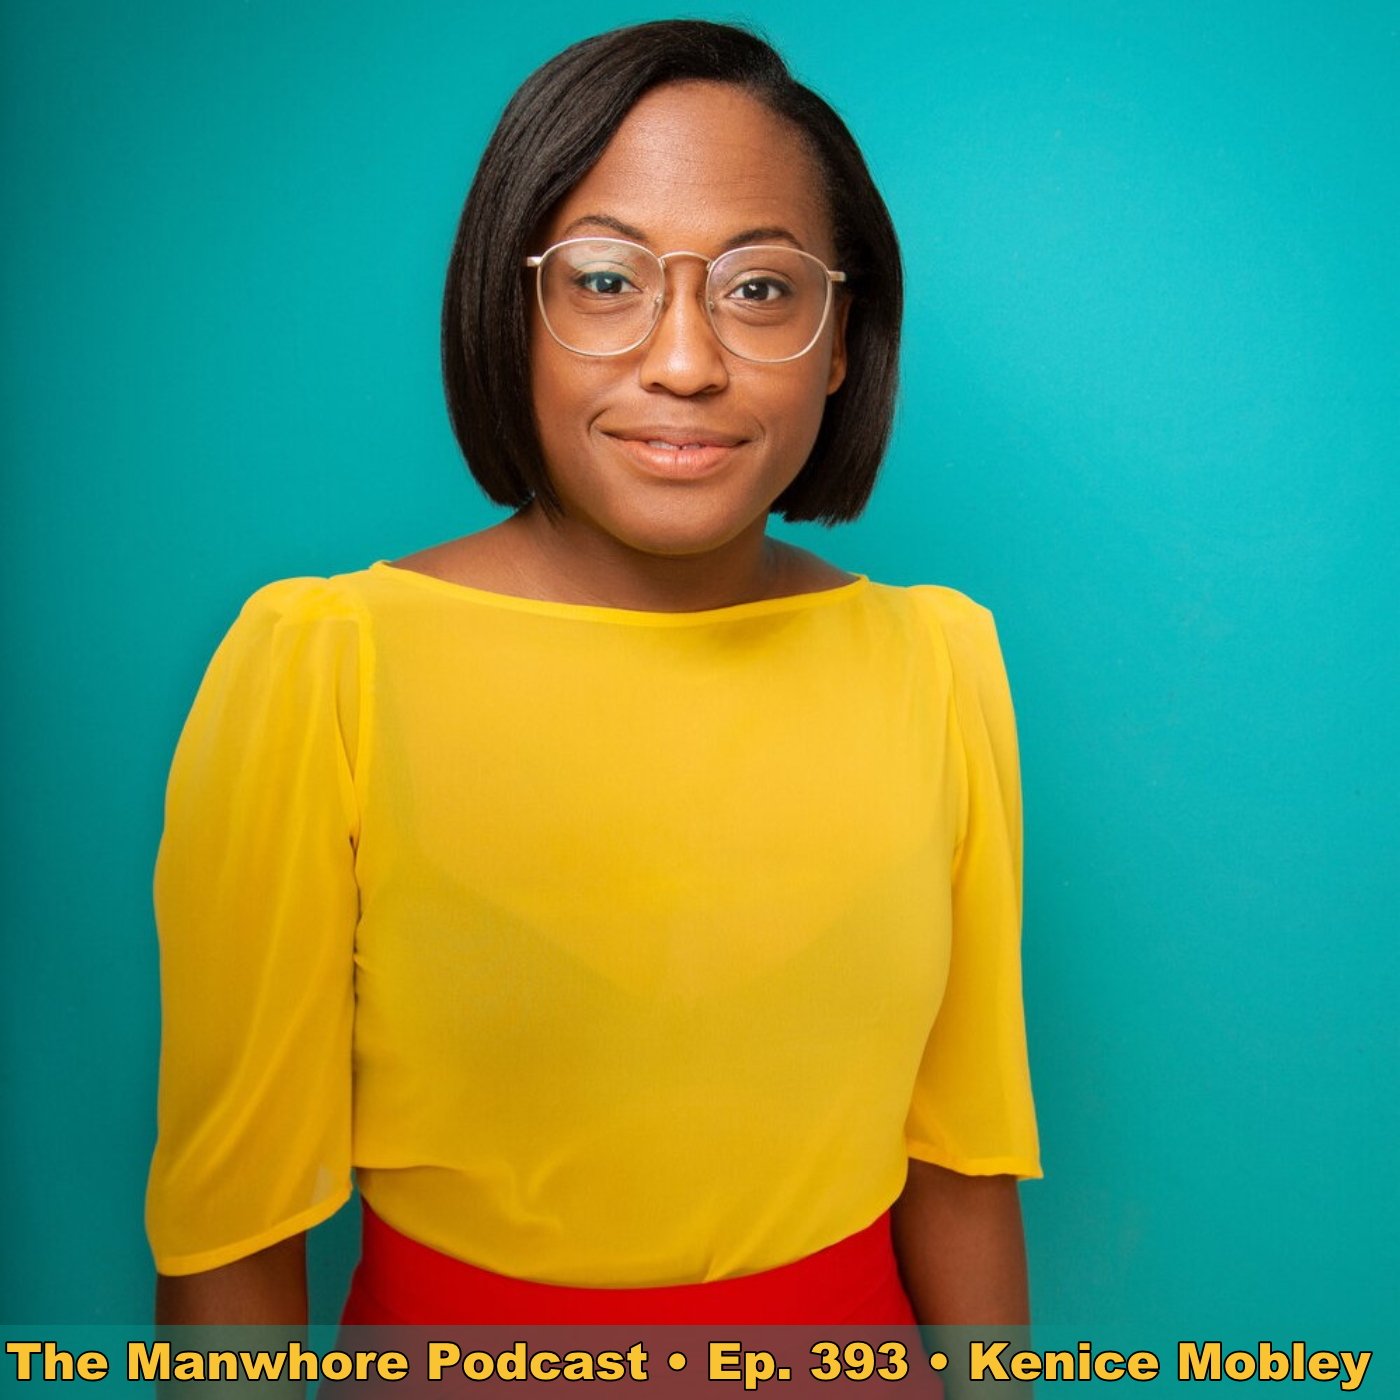 The Manwhore Podcast: A Sex-Positive Quest - Ep. 393: Oral Sex Is Allyship with comedian Kenice Mobley